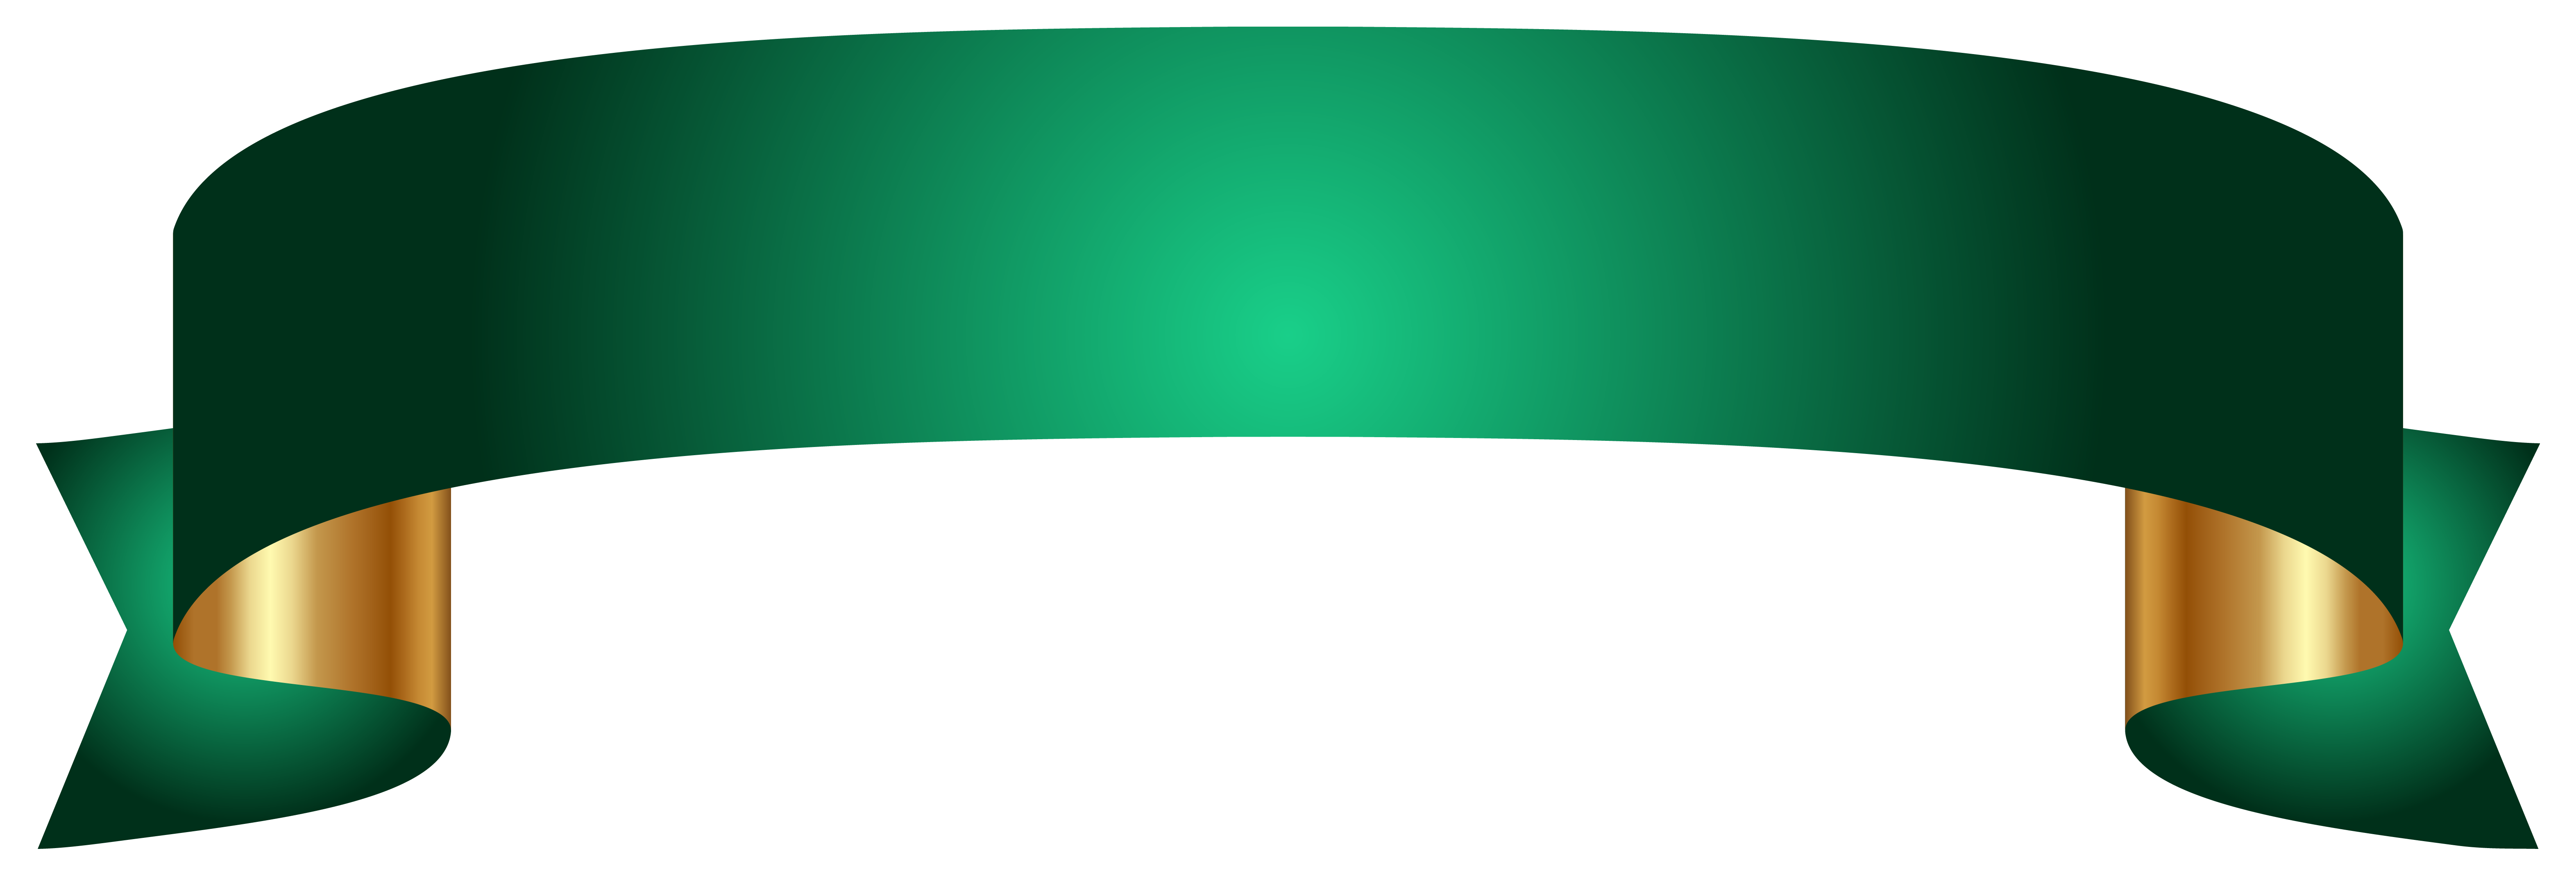 Green Banner Clipart Png